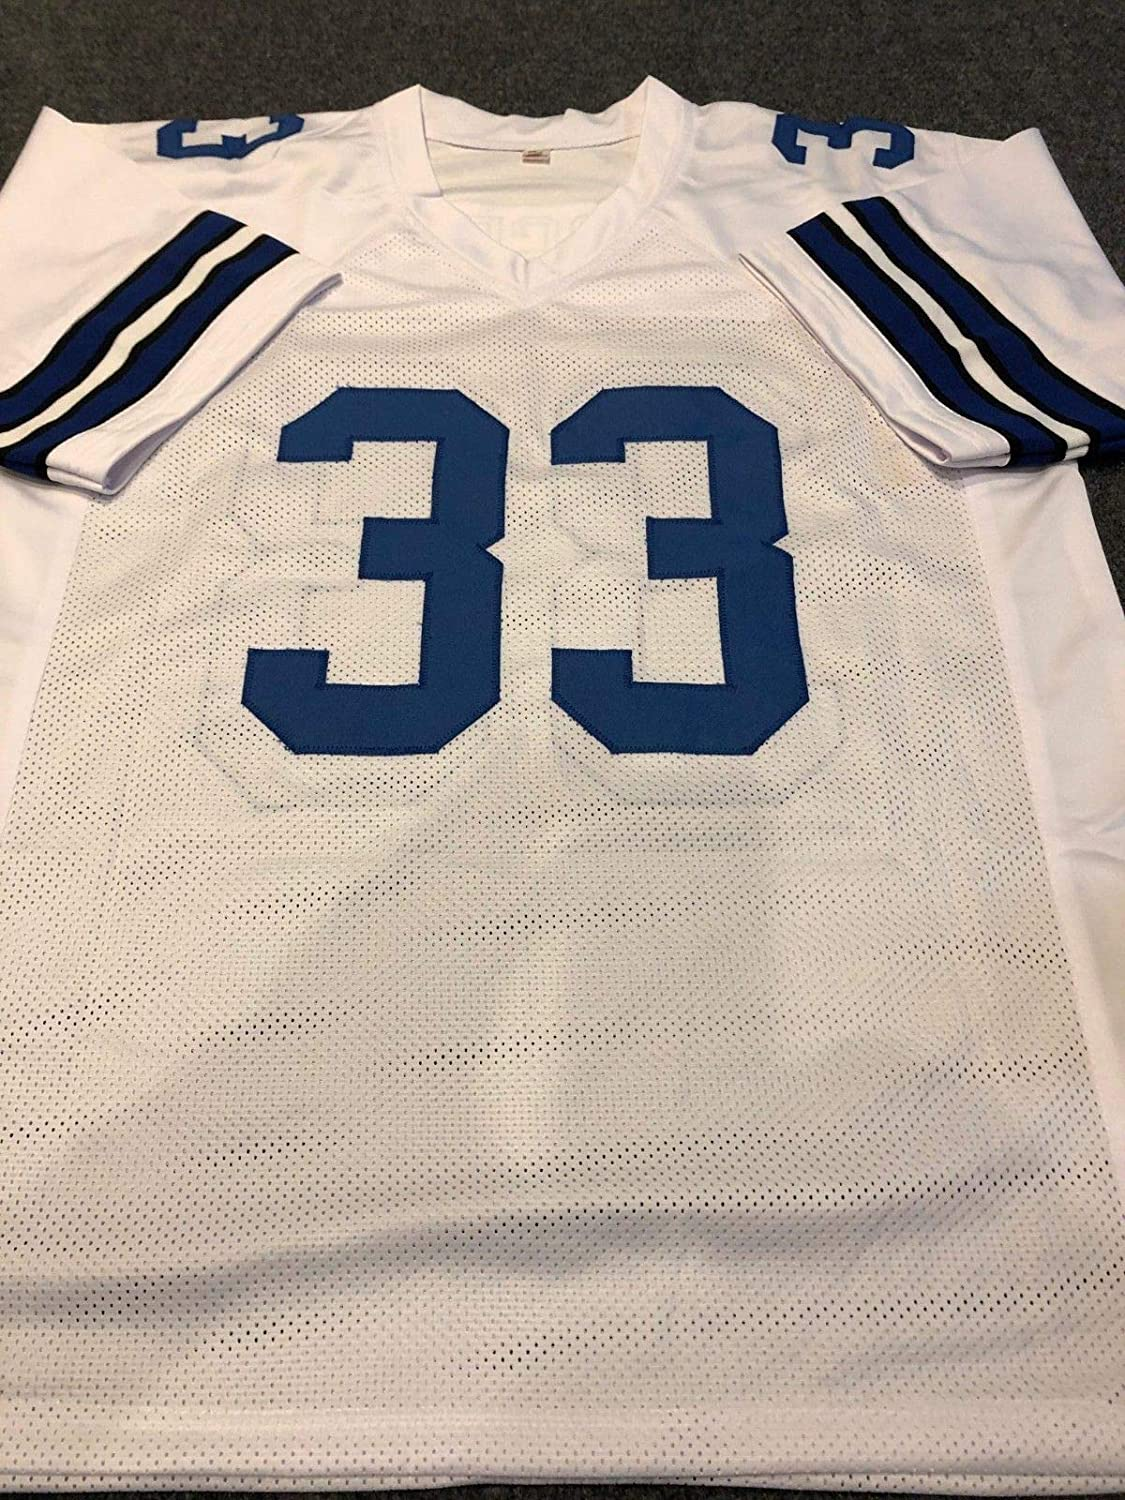 quality design 0f70b a0fb9 DALLAS COWBOYS TONY DORSETT AUTOGRAPHED SIGNED JERSEY JSA ...